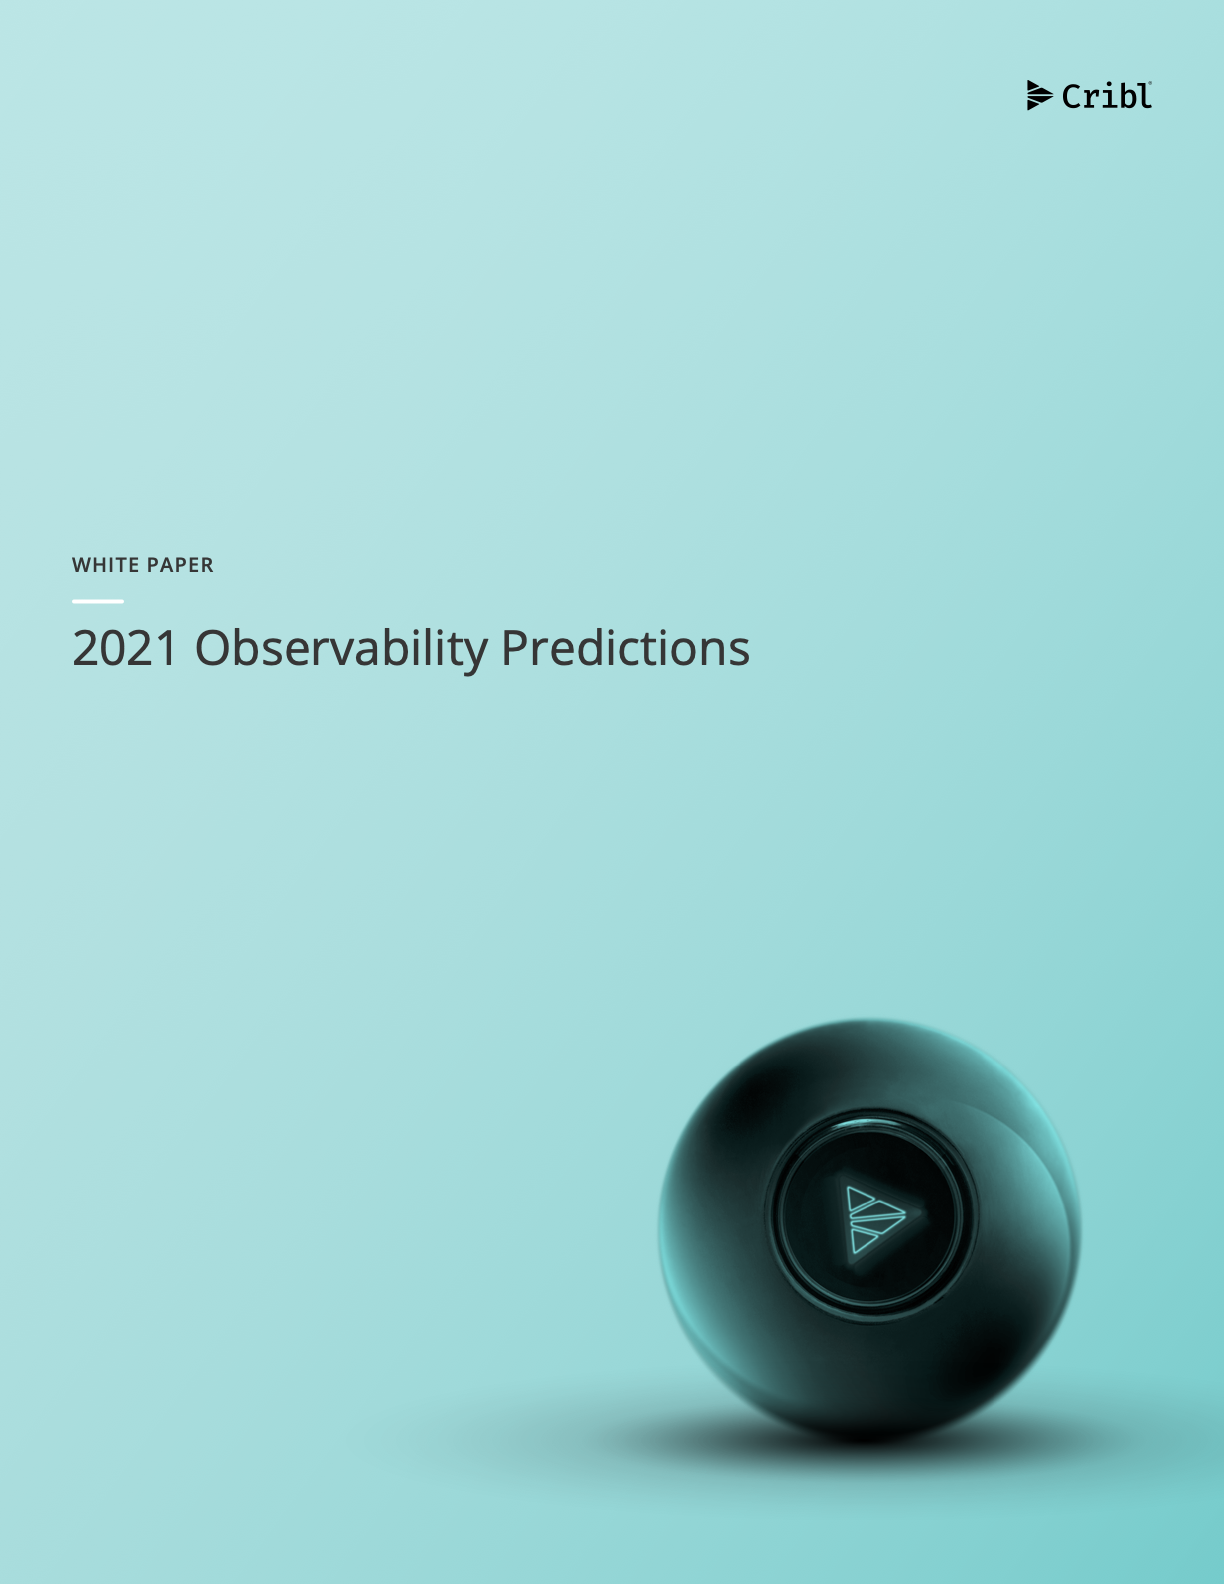 2021 Observability Predictions